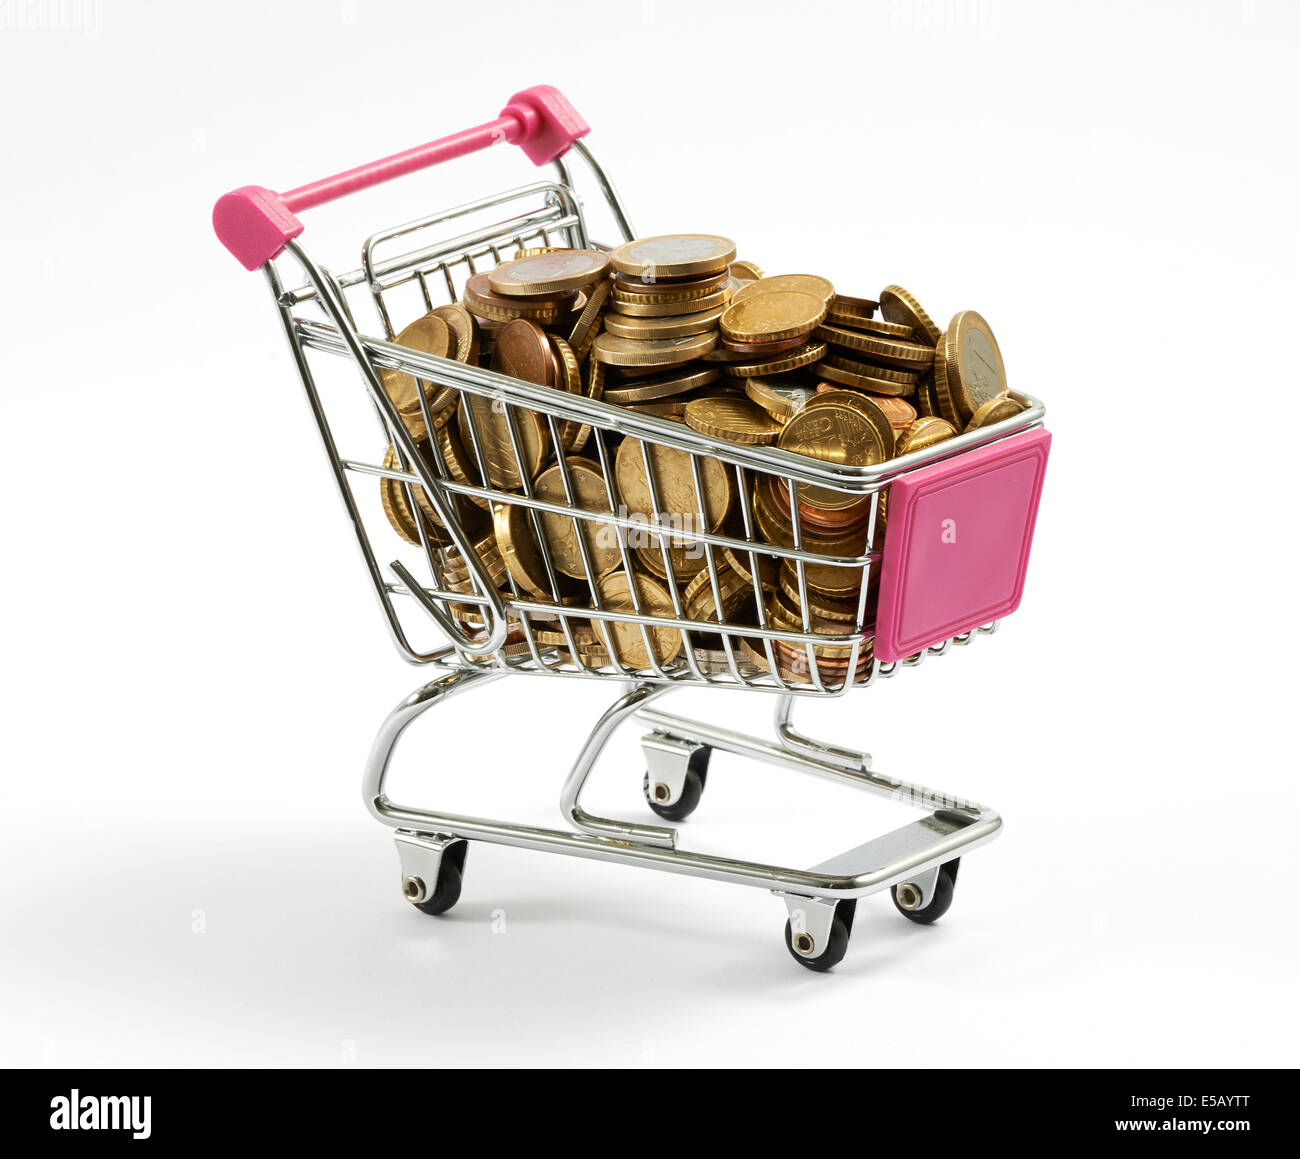 Shopping cart full of gold coins - Stock Image